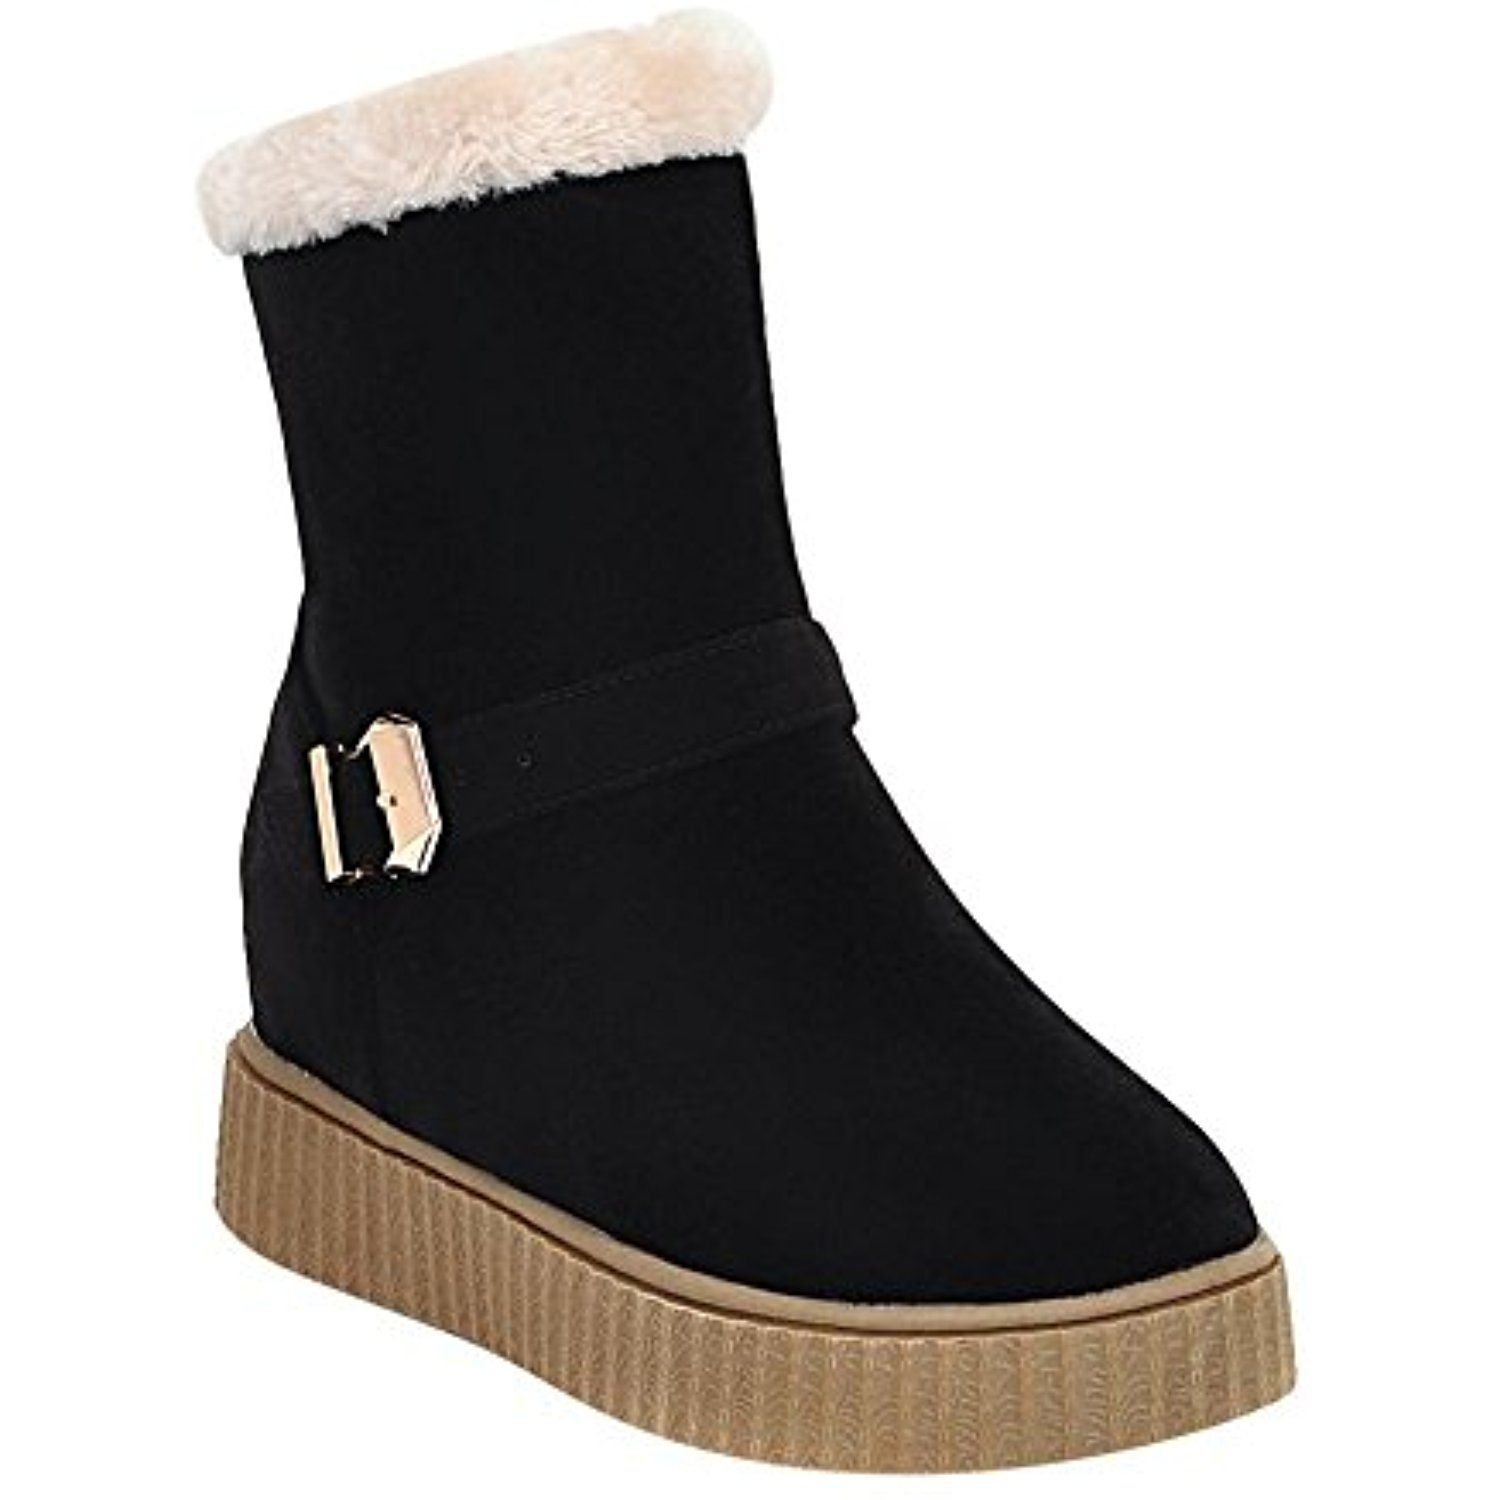 Women's Casual Platform Buckles Ankle High Snow Boots